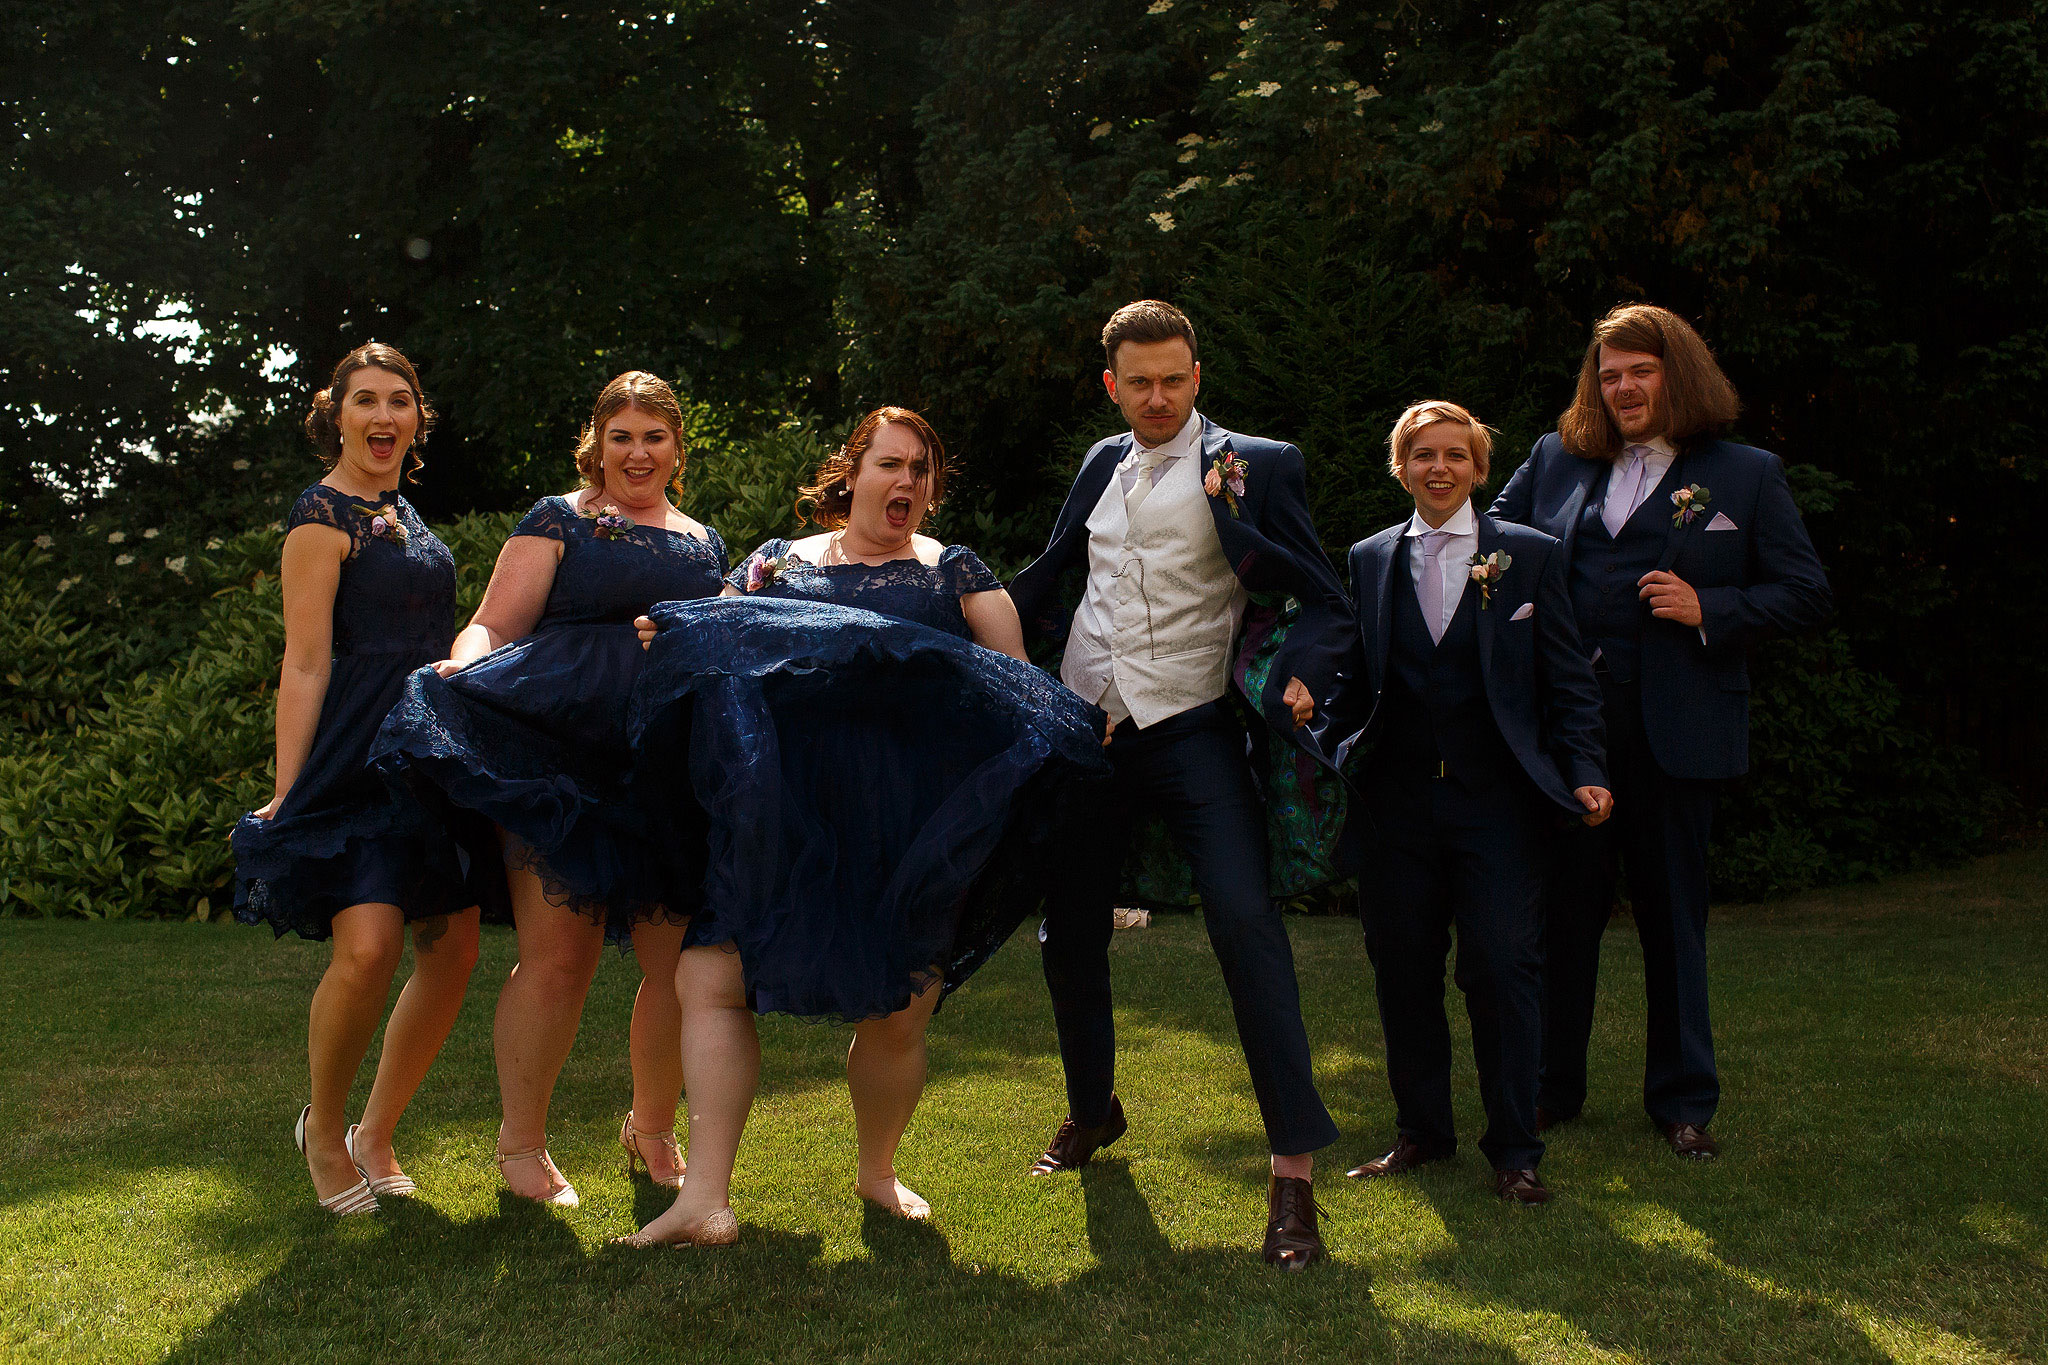 Bridesmaids and groomsmen laughing during bridal party portraits - The Villa at Wrea Green Wedding Photography - Toni Darcy Photography